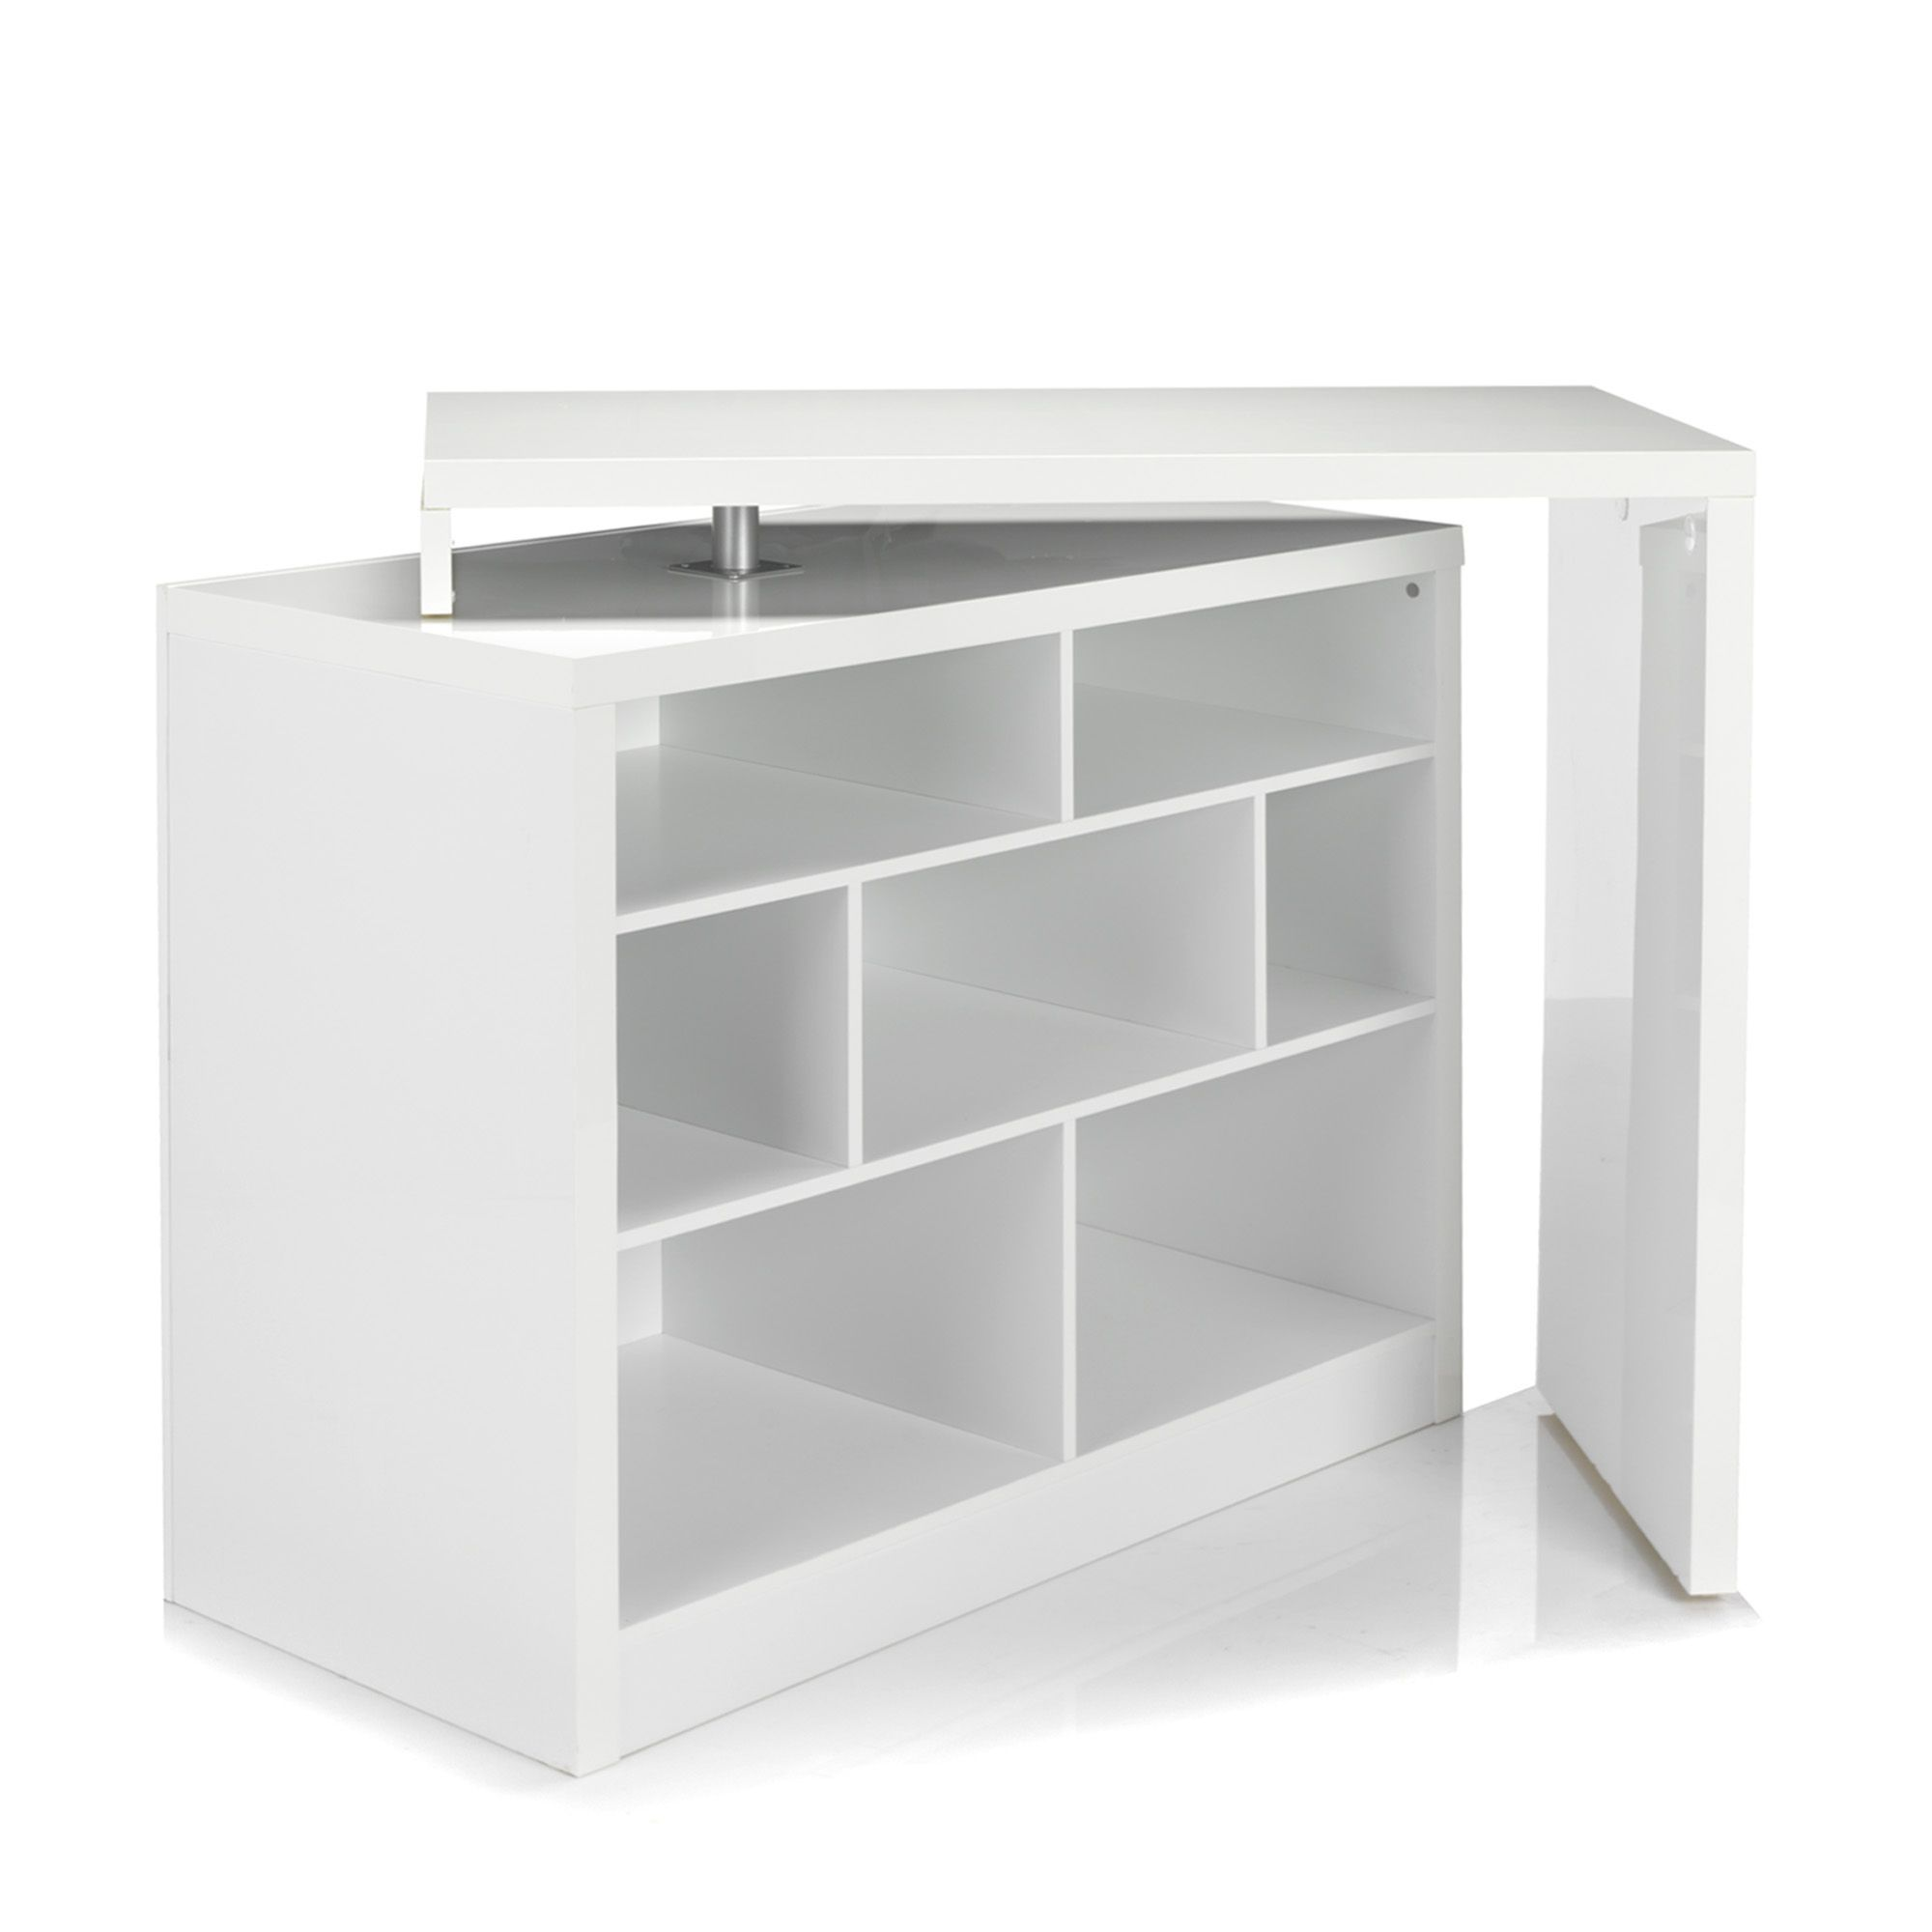 Bar table chock tables de repas alinea bar - Meuble bar cuisine ikea ...